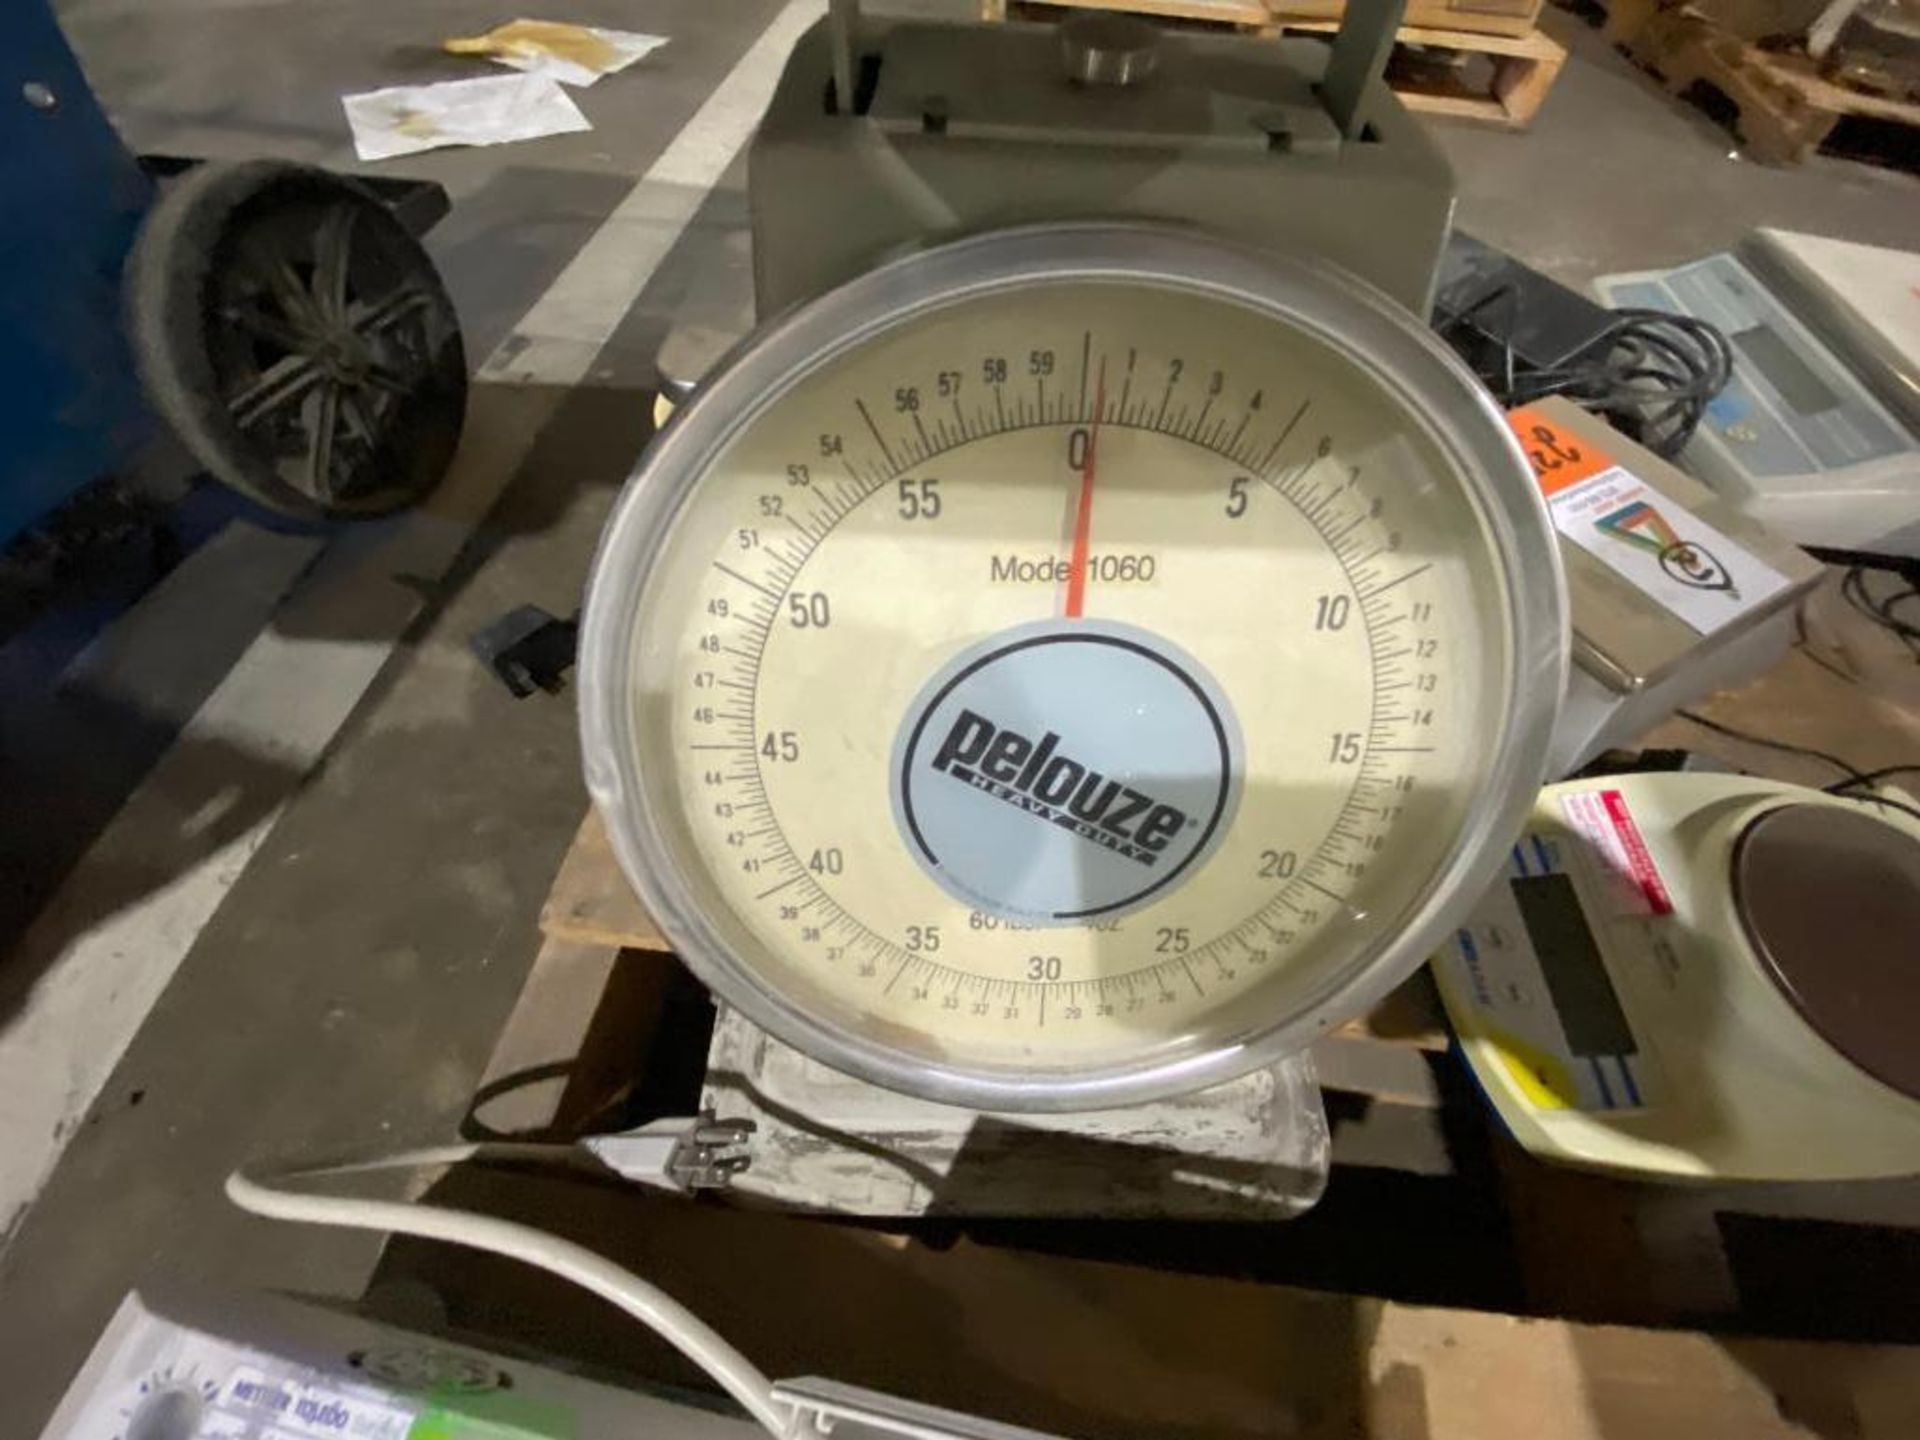 Accu-Weigh manual scale and AND digital scale - Image 4 of 5